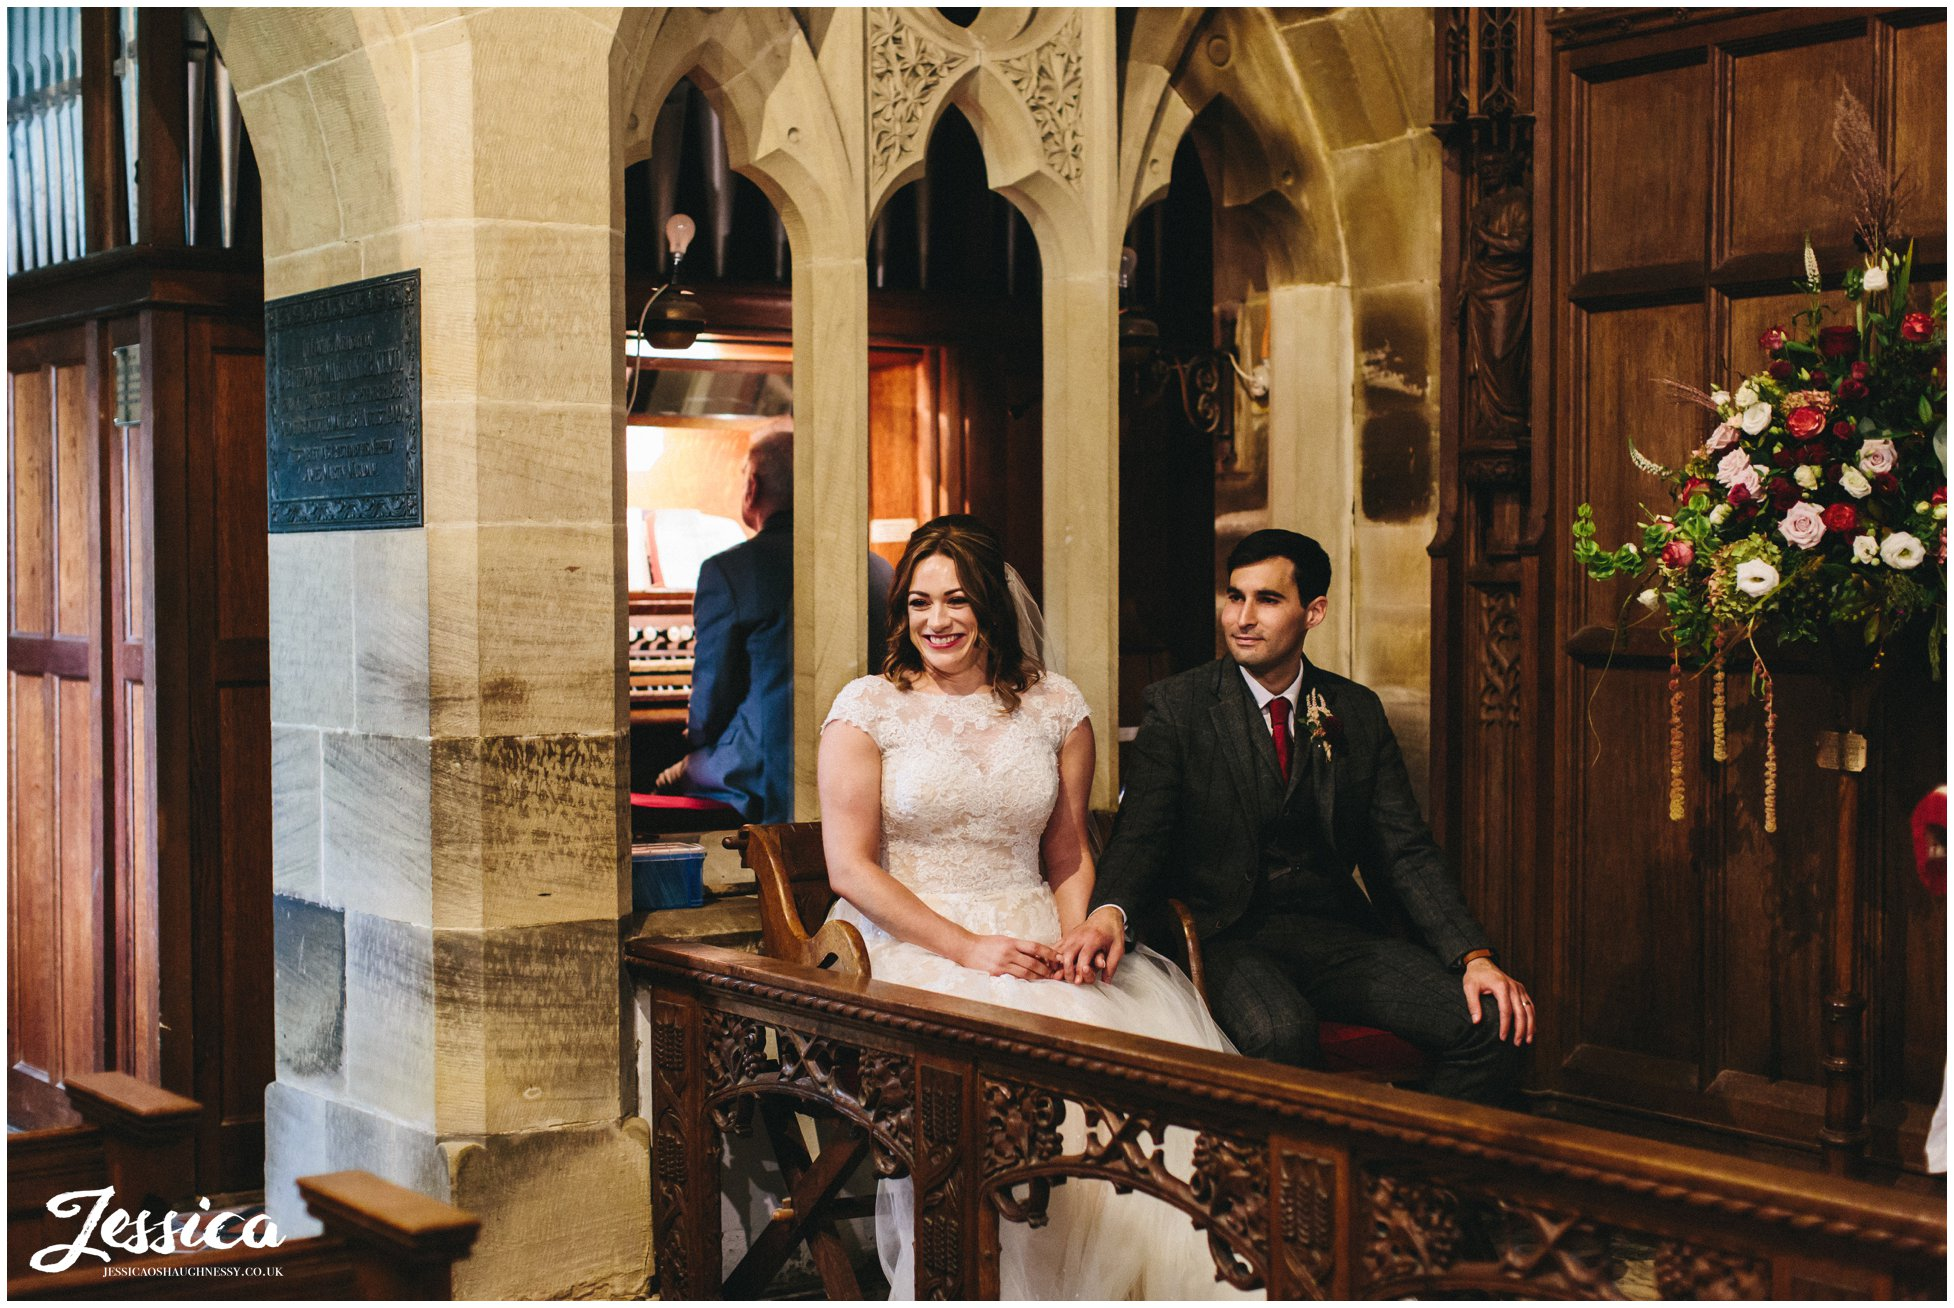 the couple sit during their wedding ceremony at Llantysilio church in north wales